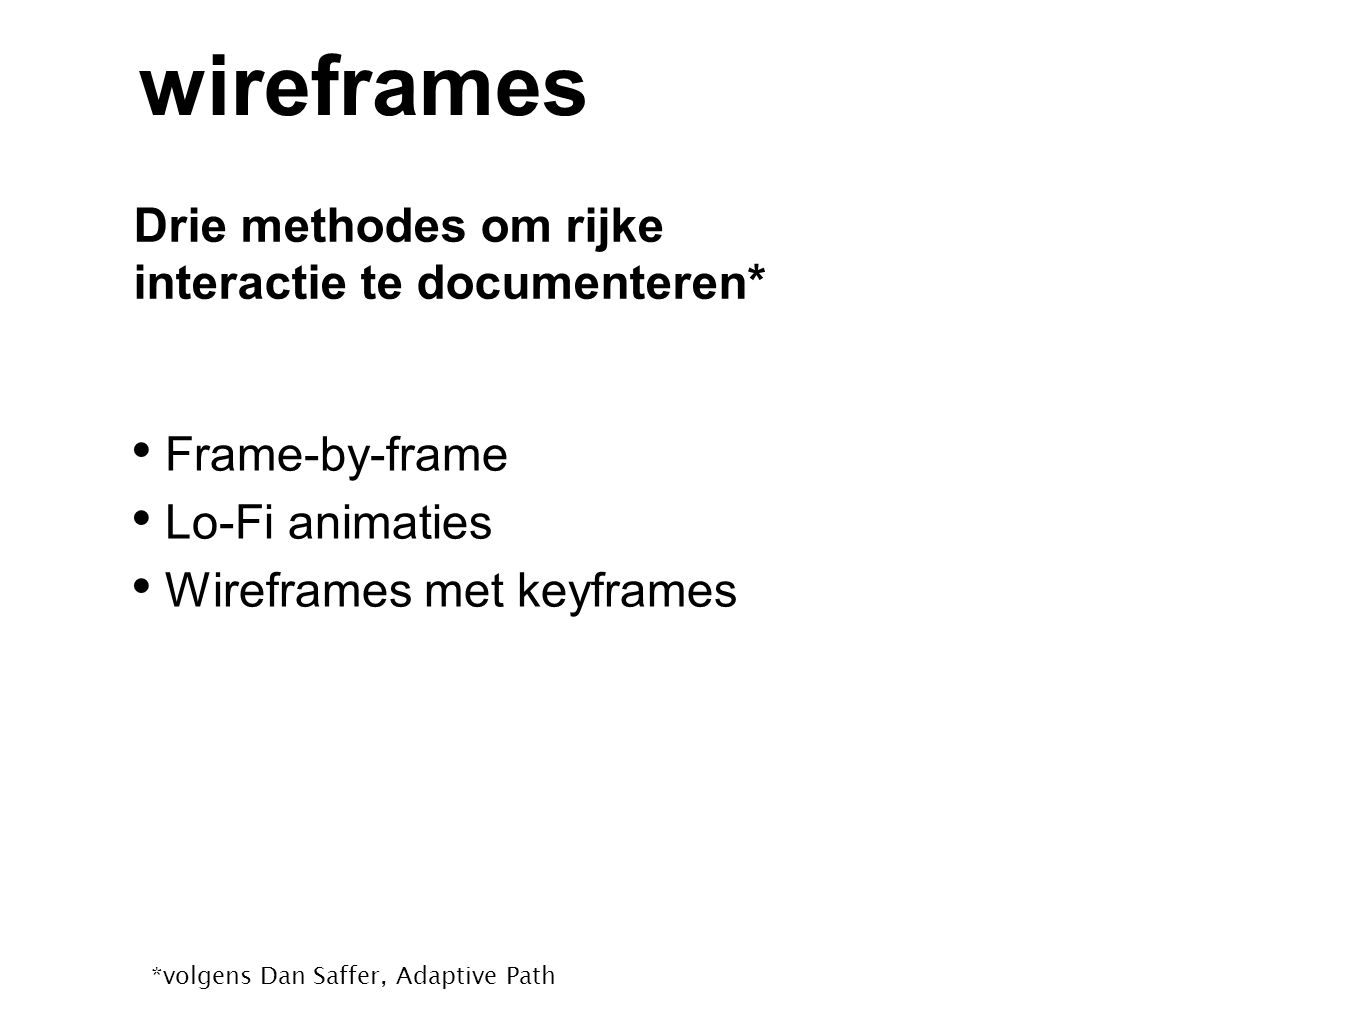 Drie methodes om rijke interactie te documenteren* wireframes Frame-by-frame Lo-Fi animaties Wireframes met keyframes *volgens Dan Saffer, Adaptive Path